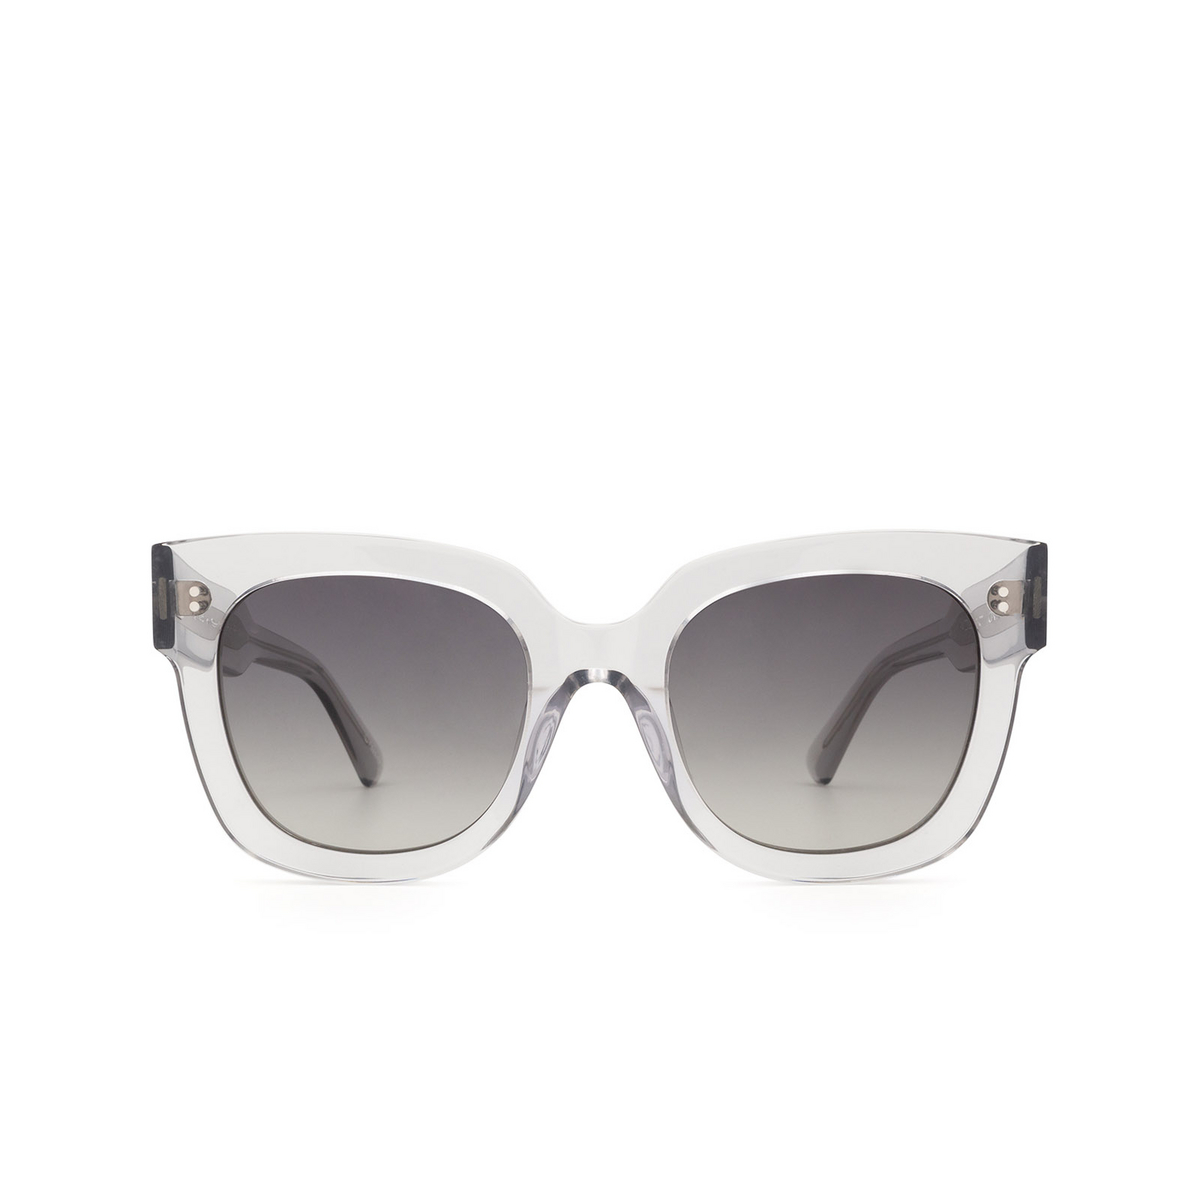 Chimi® Square Sunglasses: 08 color Grey - front view.